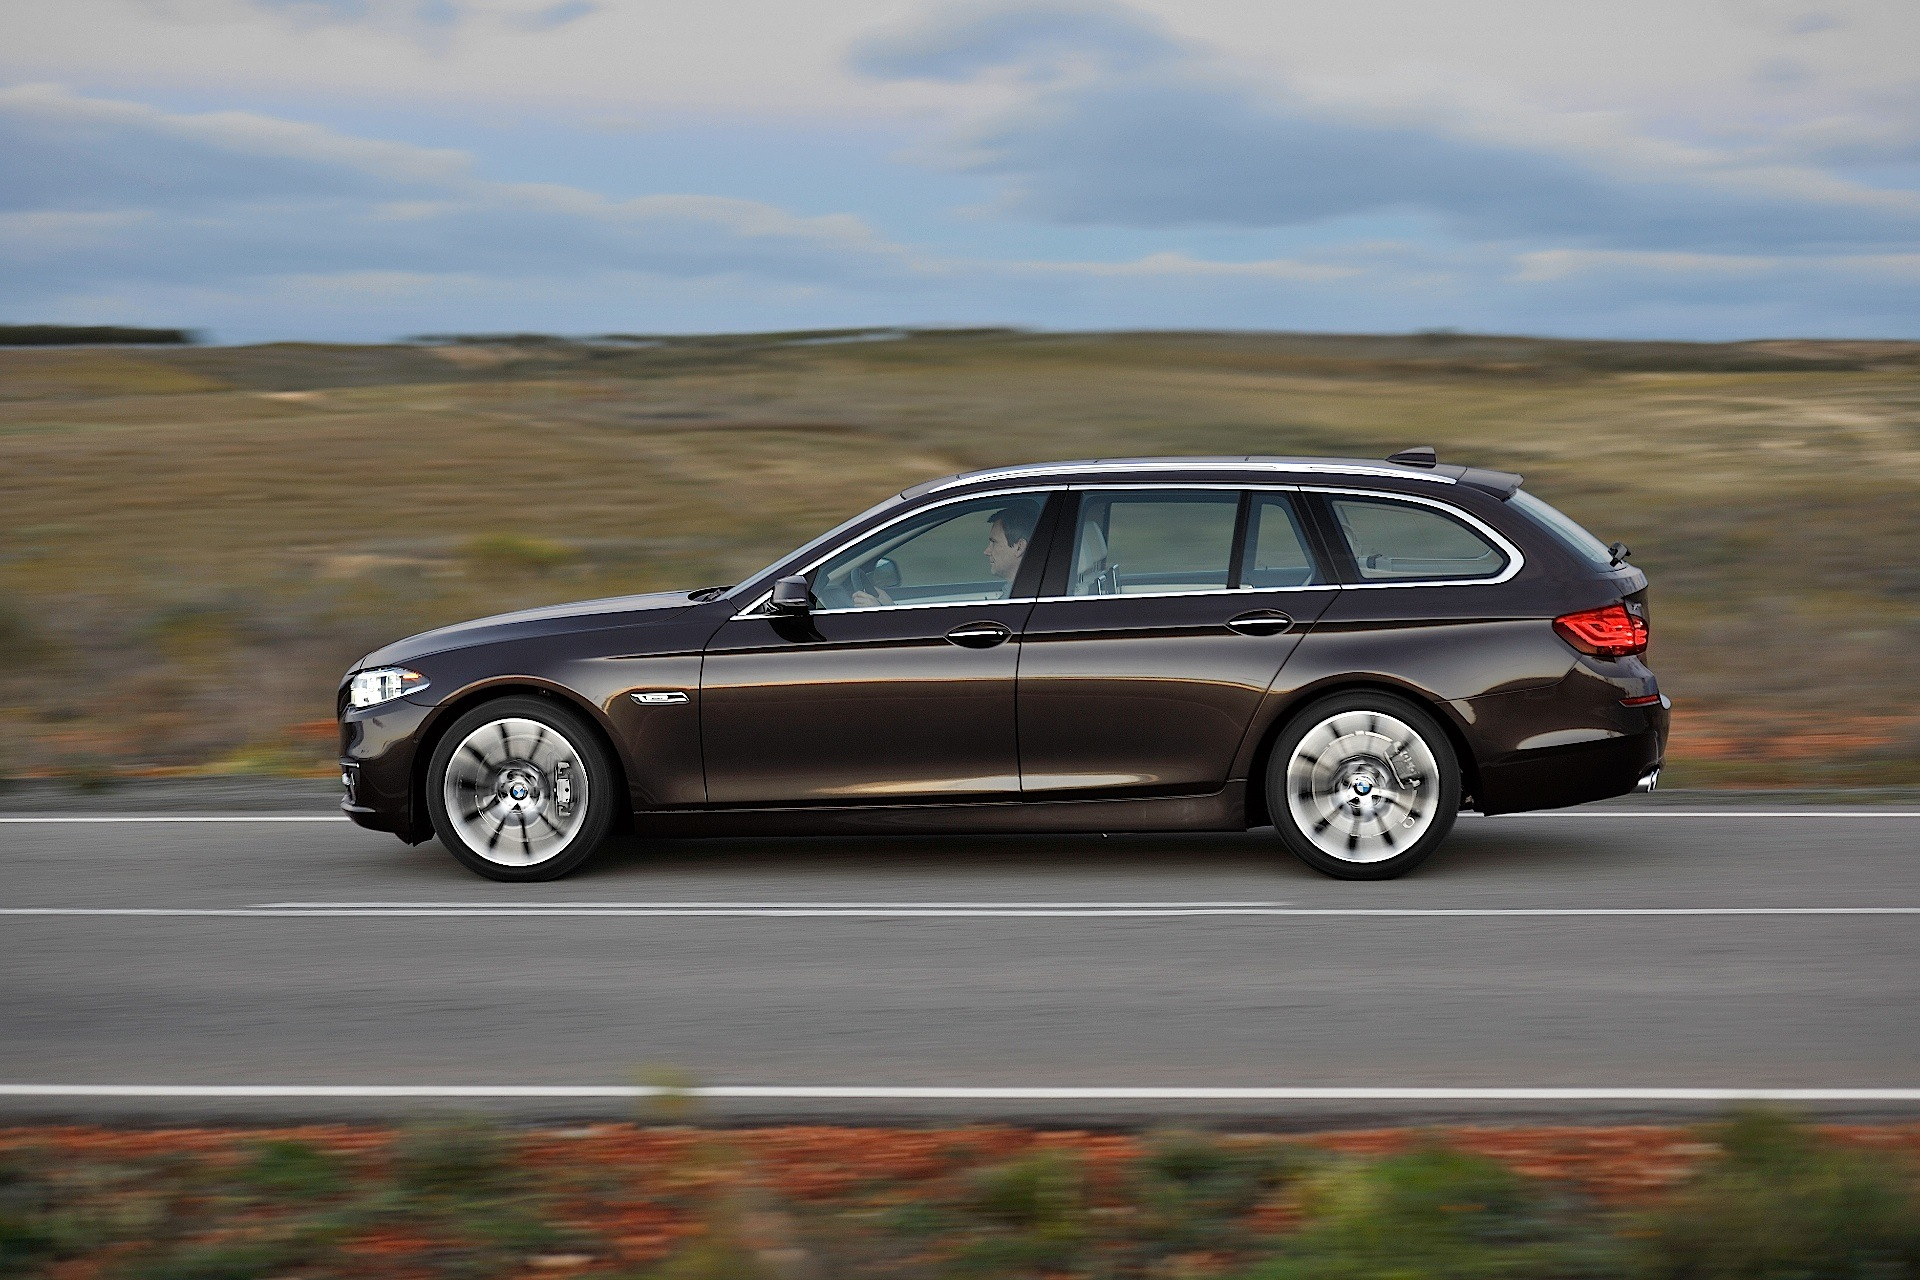 BMW 5 Series Touring (F11) LCI